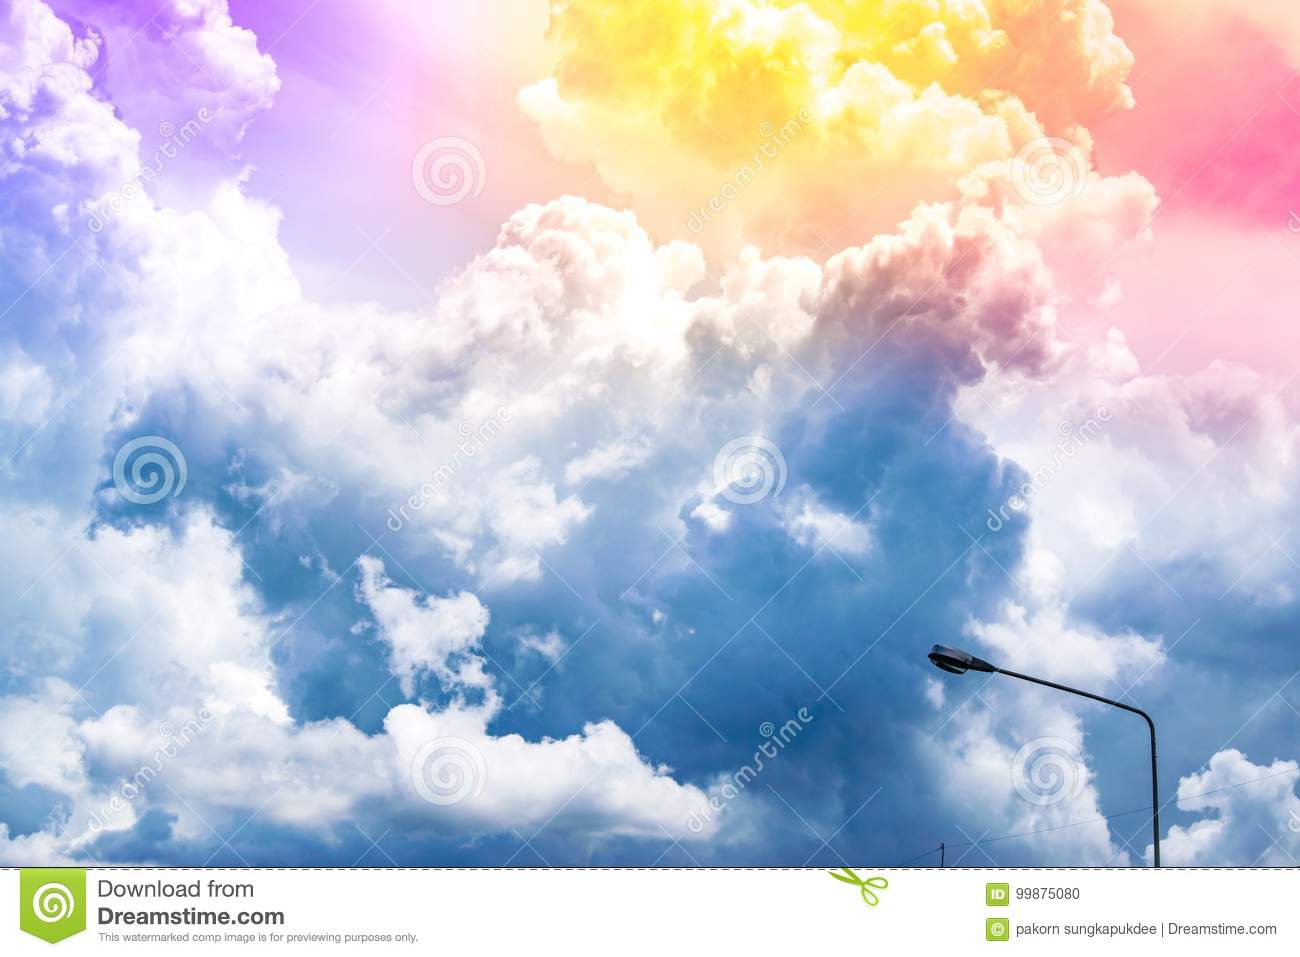 Sunshine the blue sky with cloud blurry background. Using wallpaper or background for nature, natural, and refreshing.